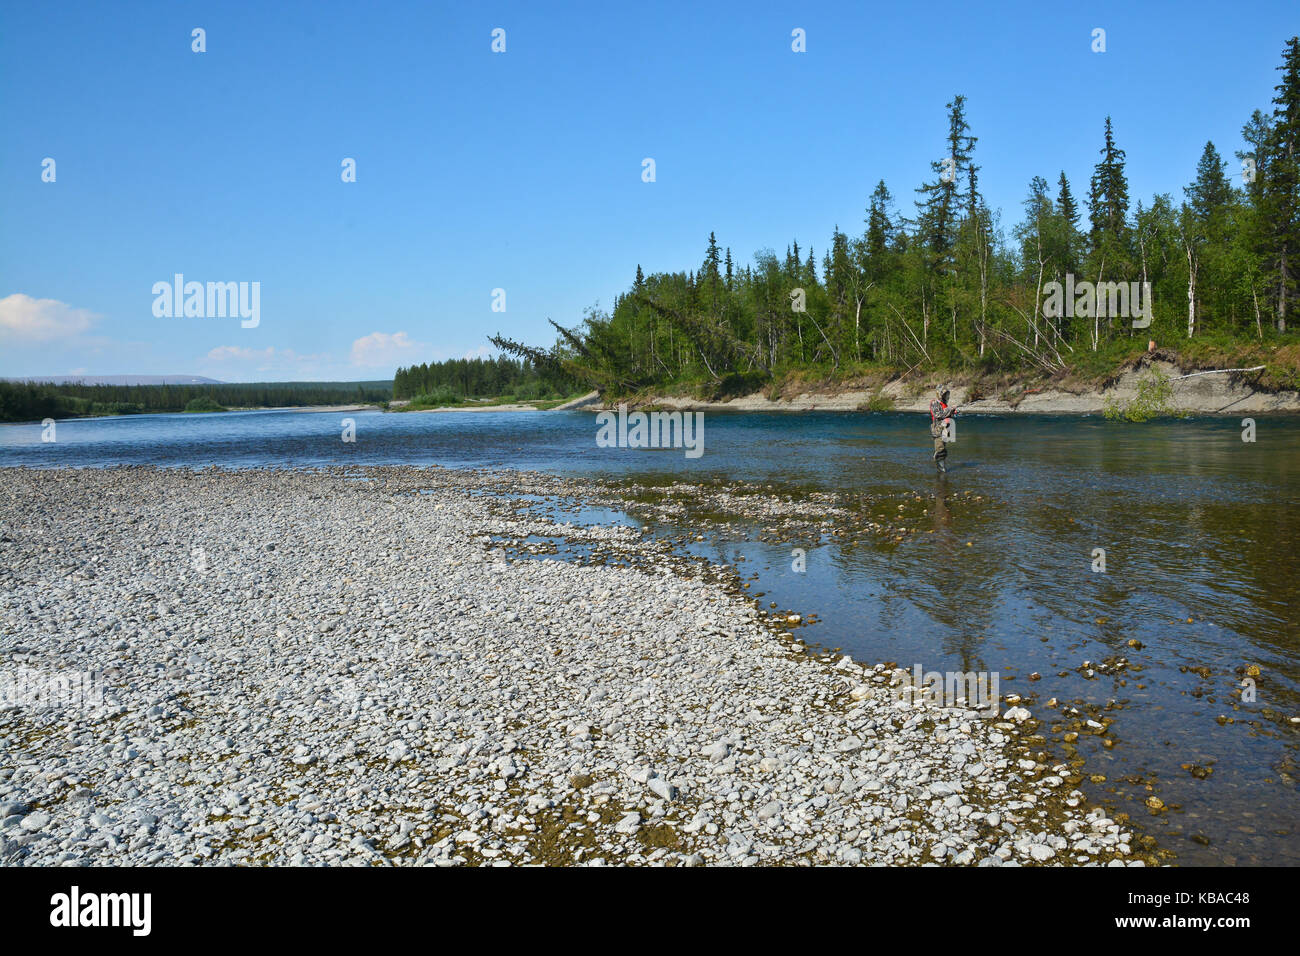 Fishing in the Polar Urals. Summer water landscape and fascinating nobby. - Stock Image